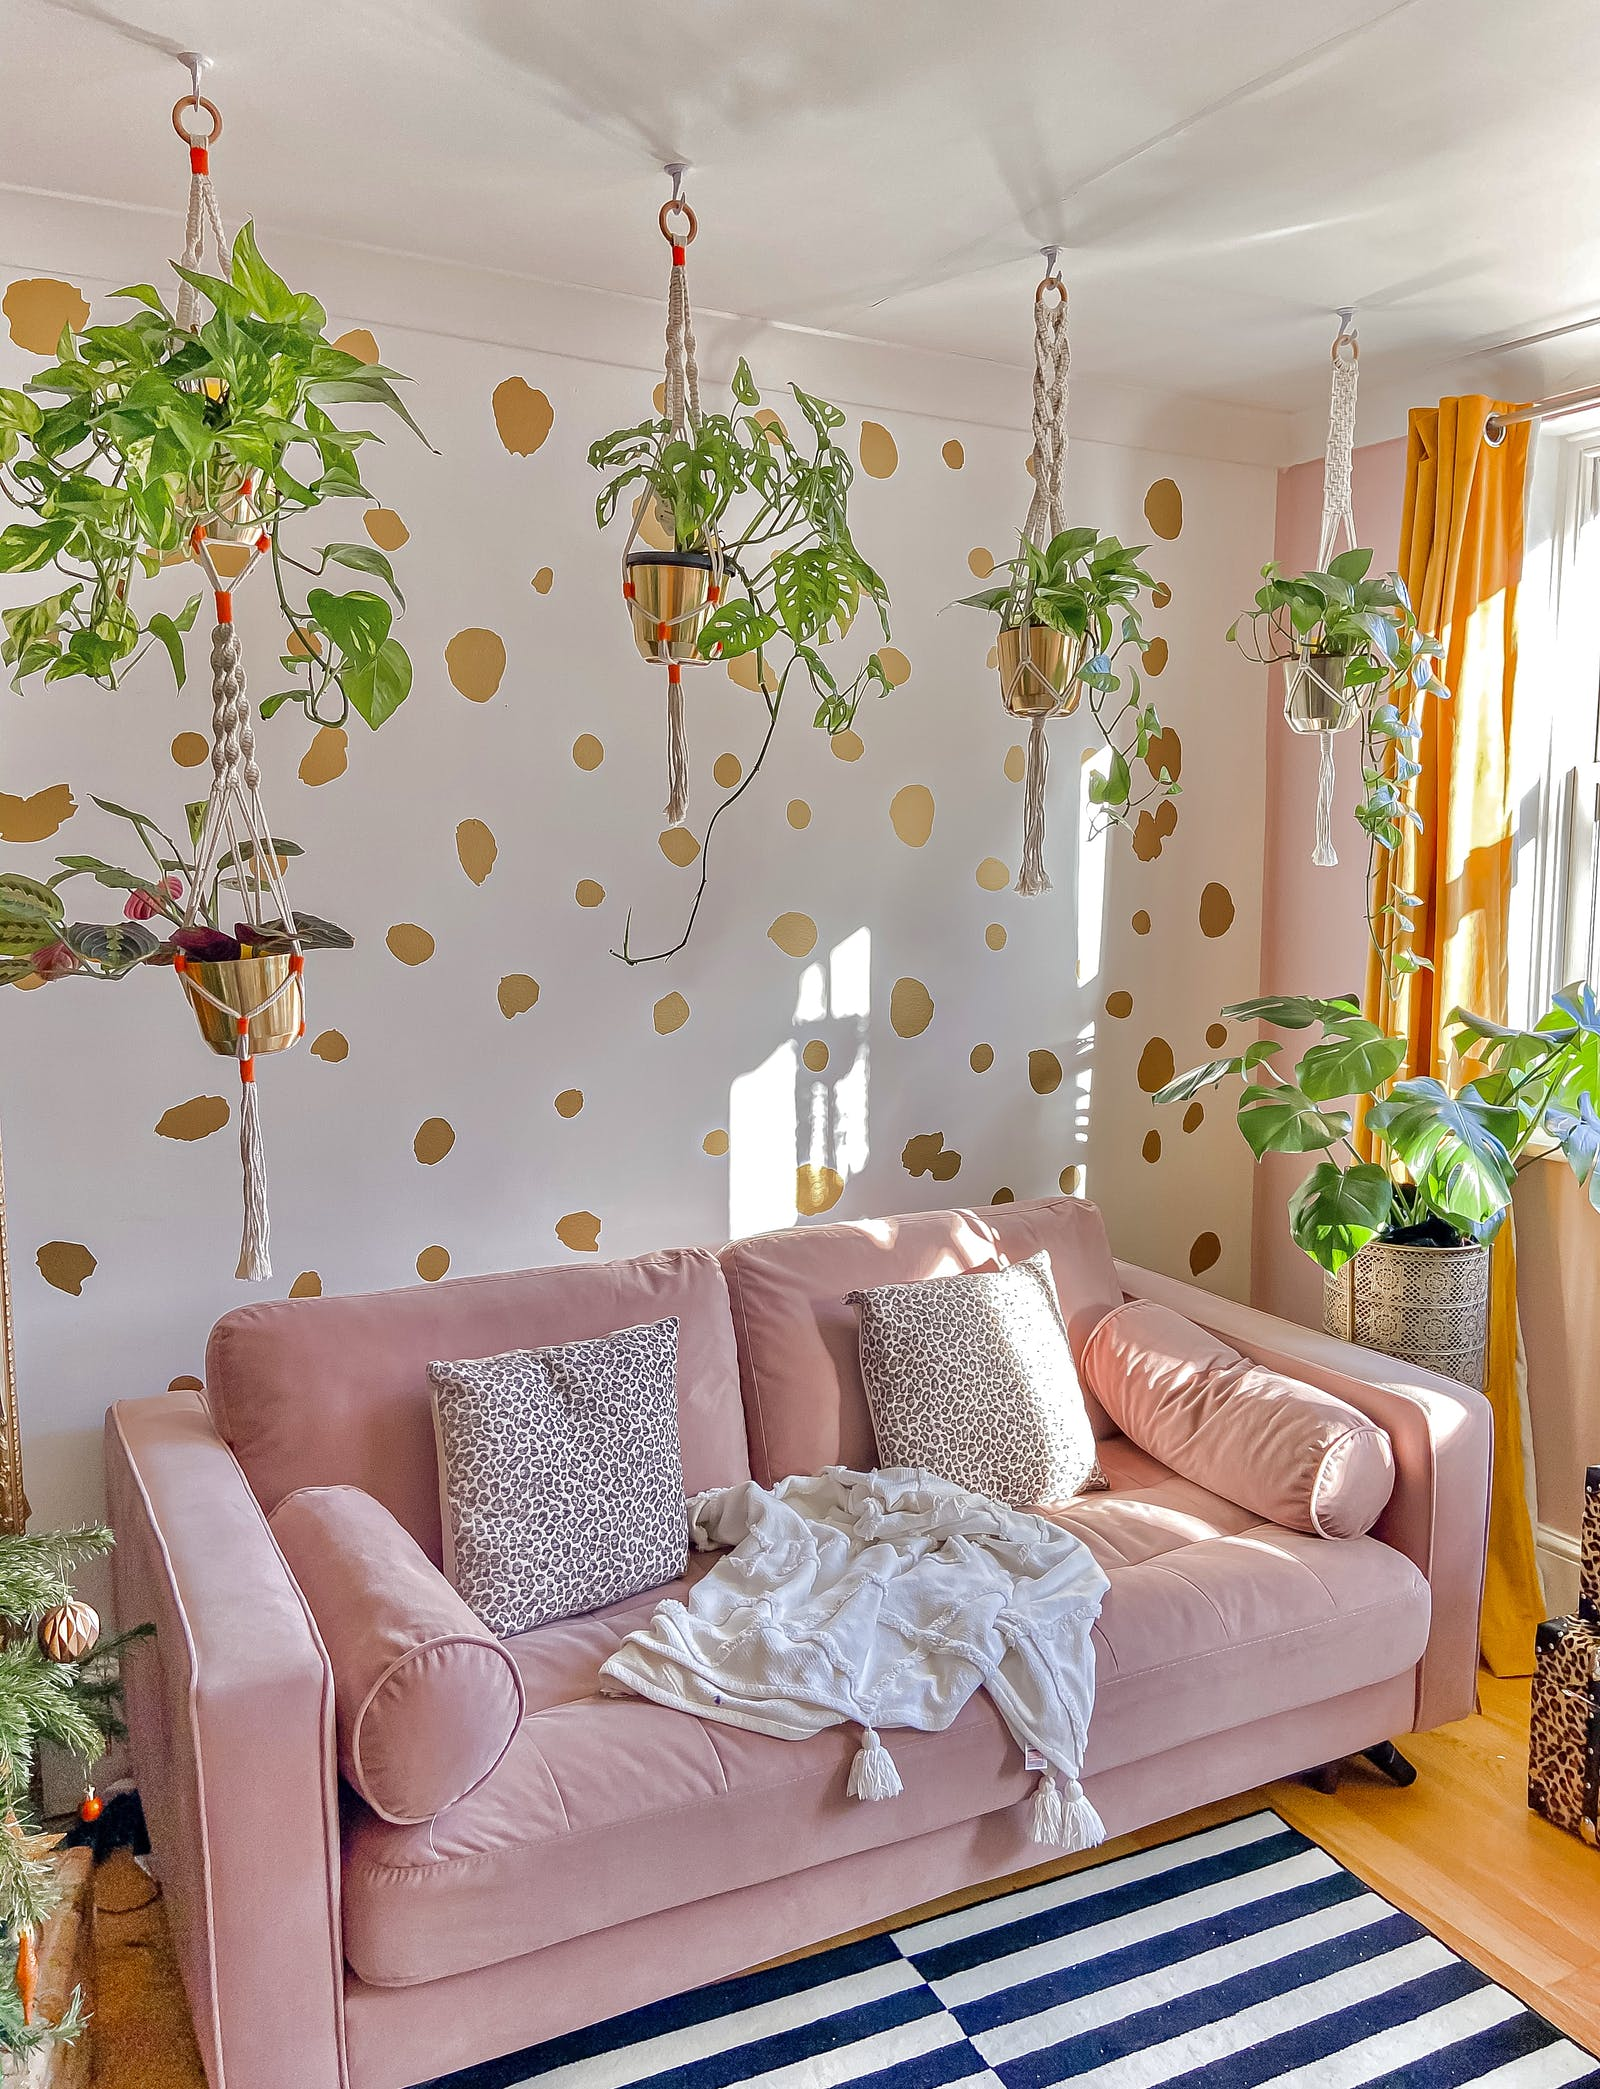 Brightly coloured living room with polkadot wallpaper and hanging plants